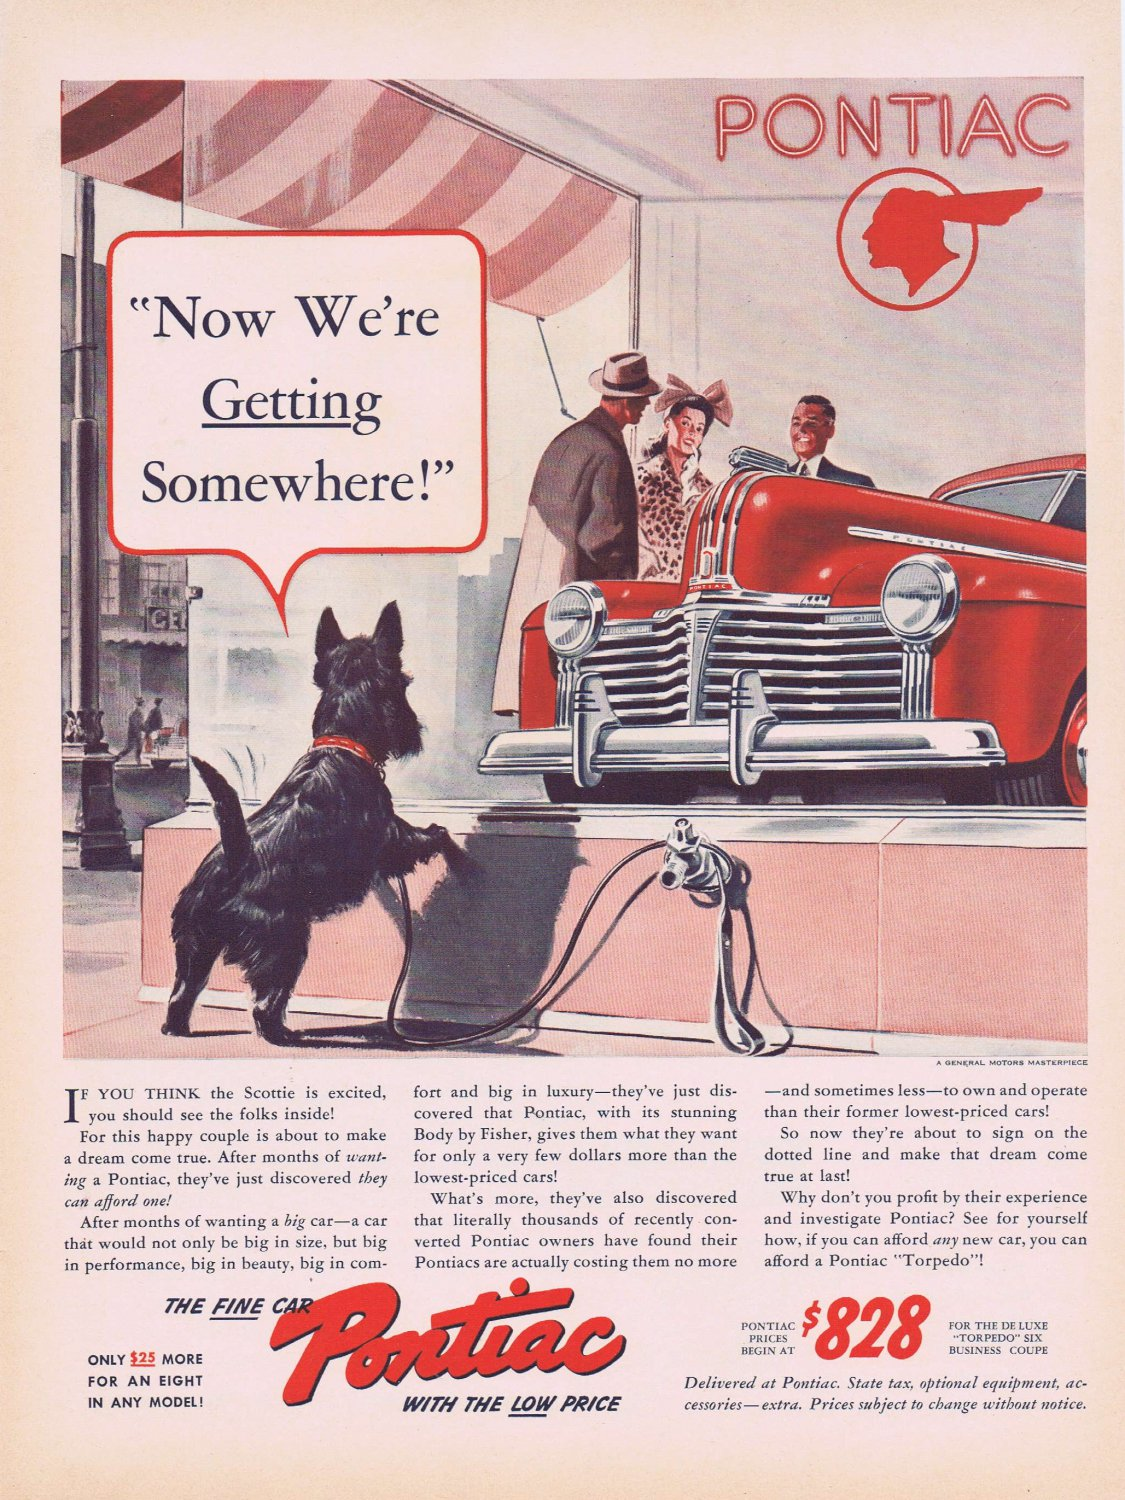 1941 Pontiac Automobile Original Vintage Ad with Neat Black Scottish Terrier Dog for 828 Dollars